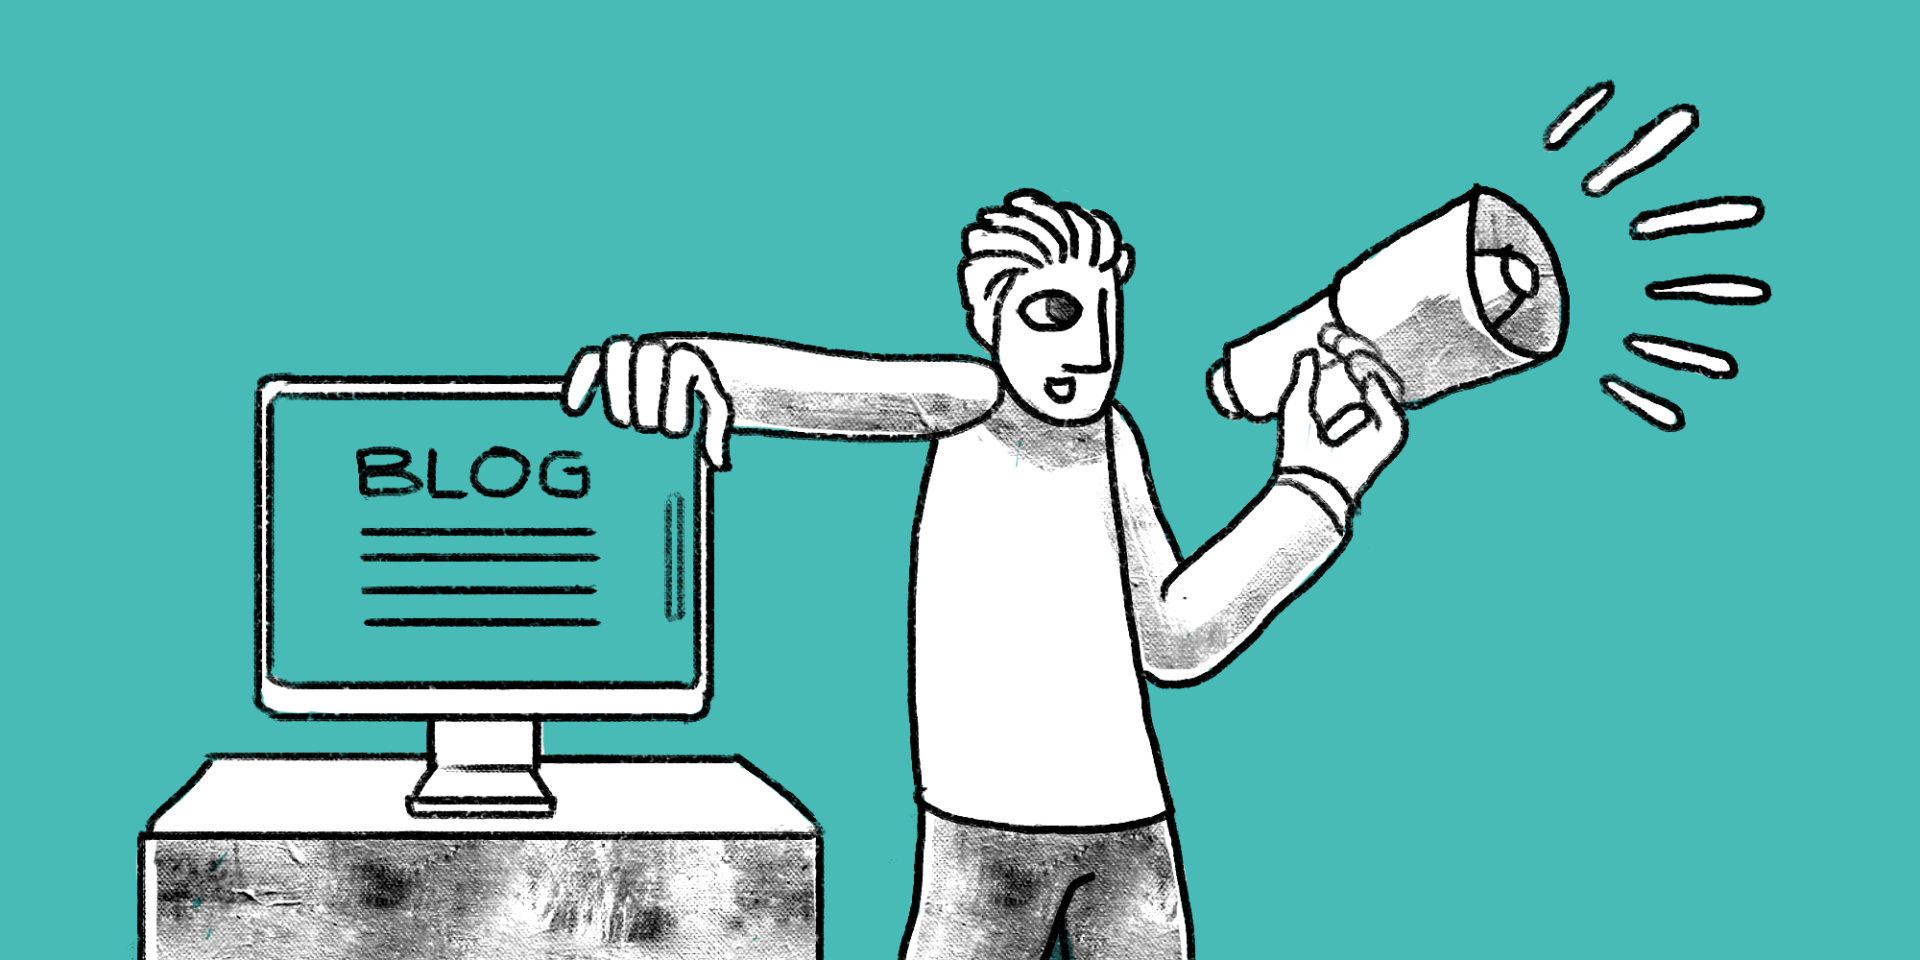 illustration of a man speaking through a megaphone with his hand on a computer monitor showing a blog; Use a blog to supplement all of your marketing efforts main image